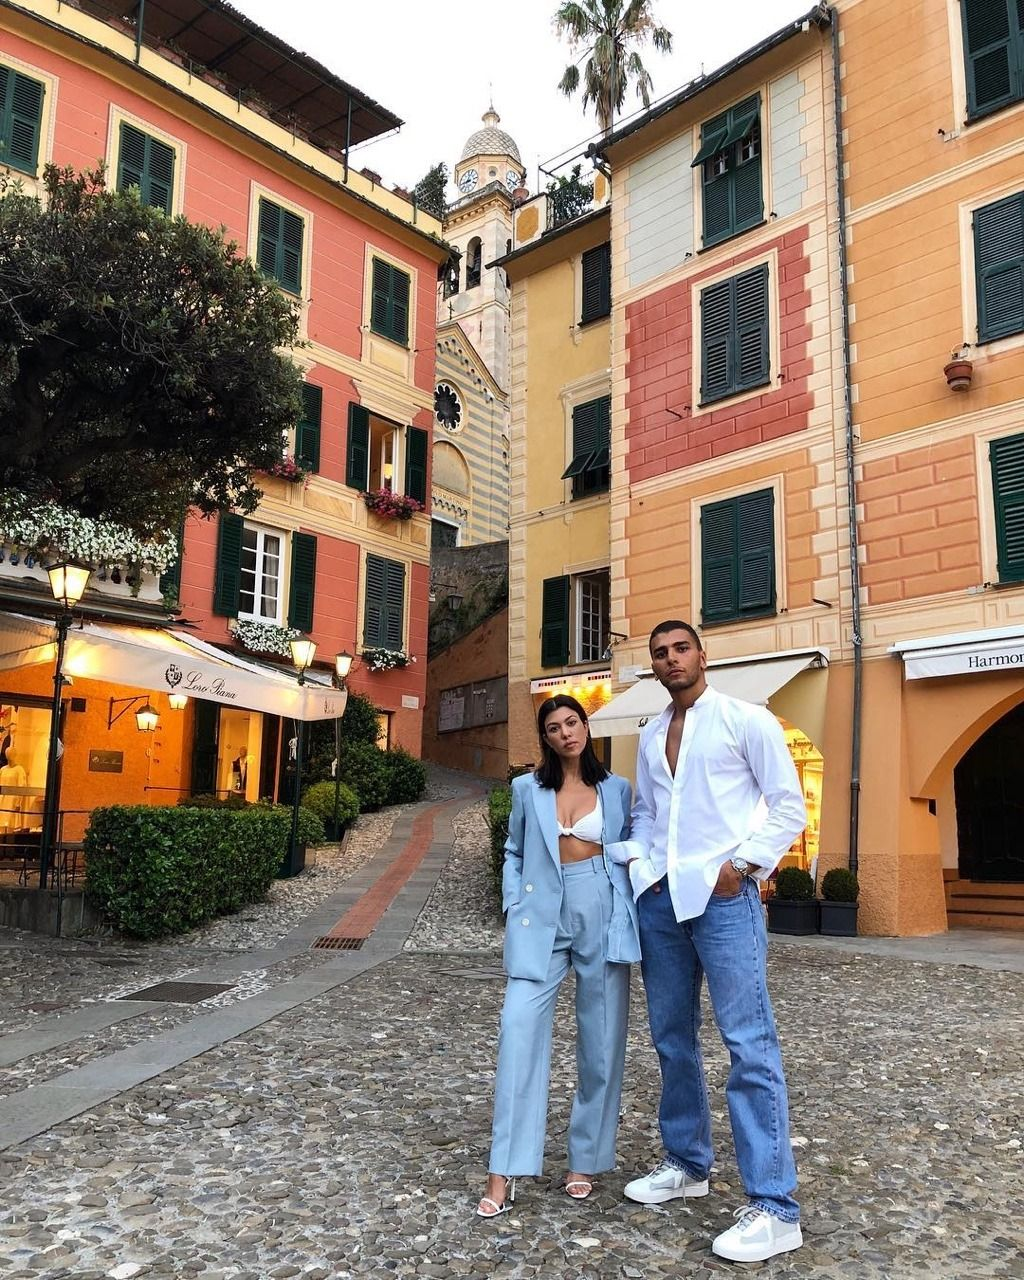 Kourtney and Younes in Italy